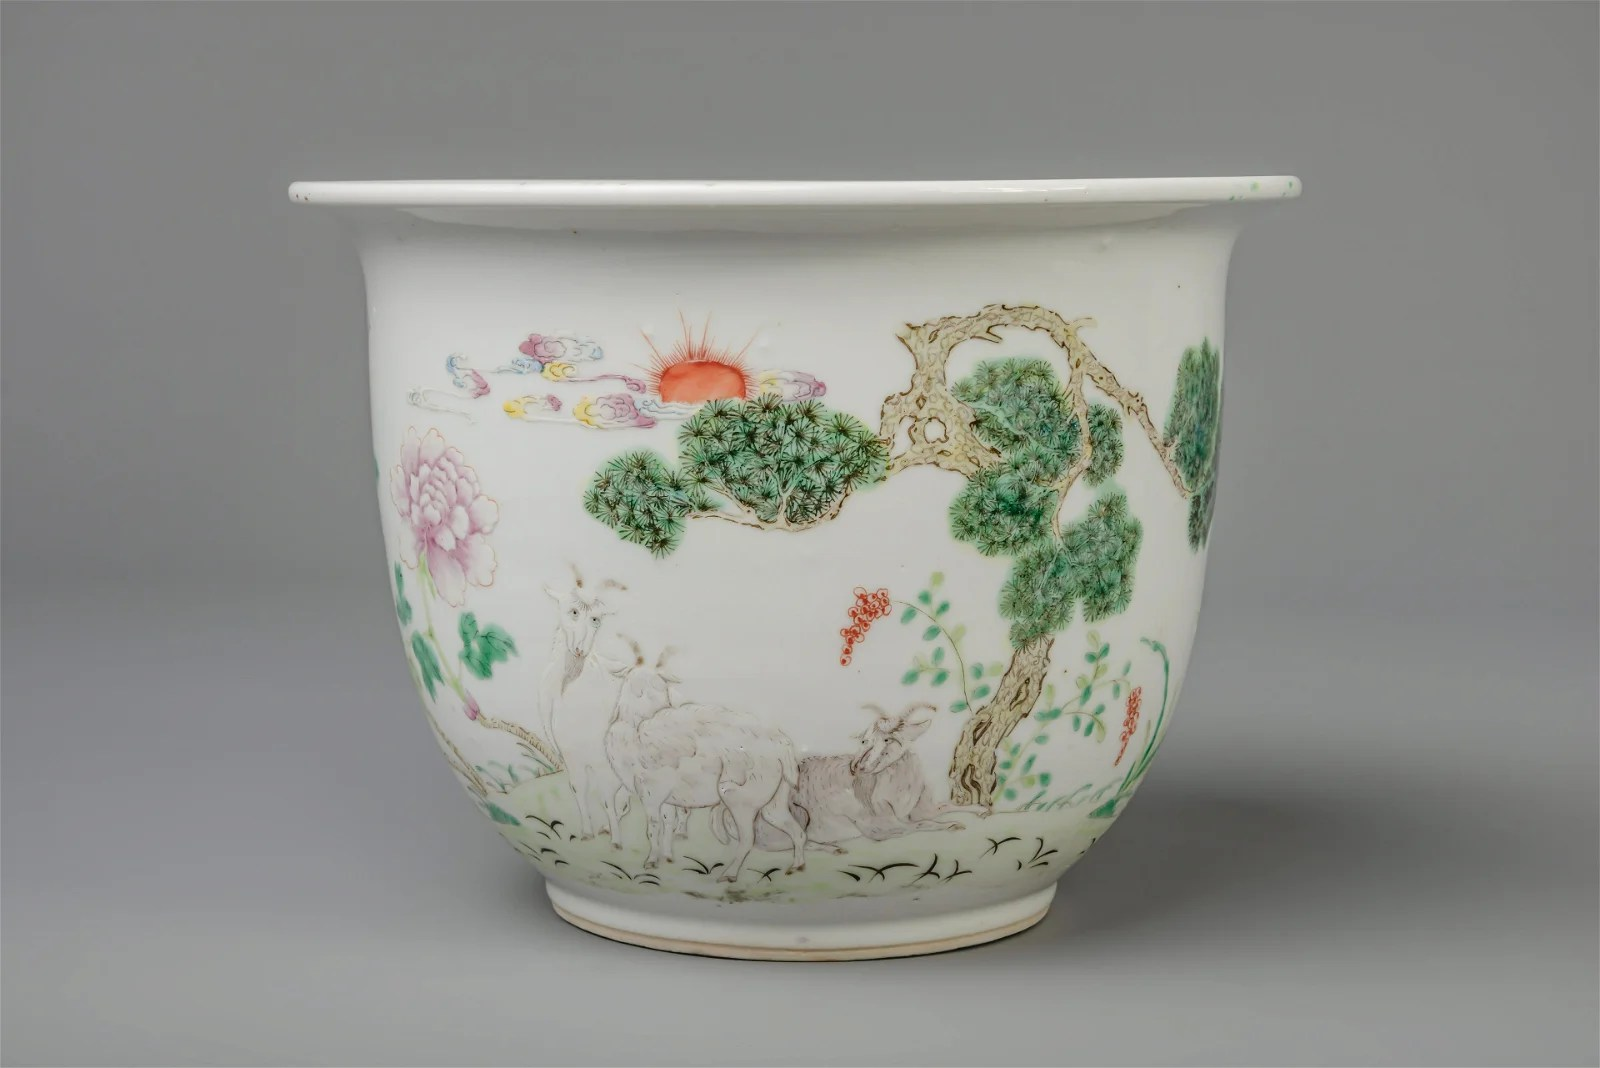 A Chinese famille rose jardinière with goats, 19th C.